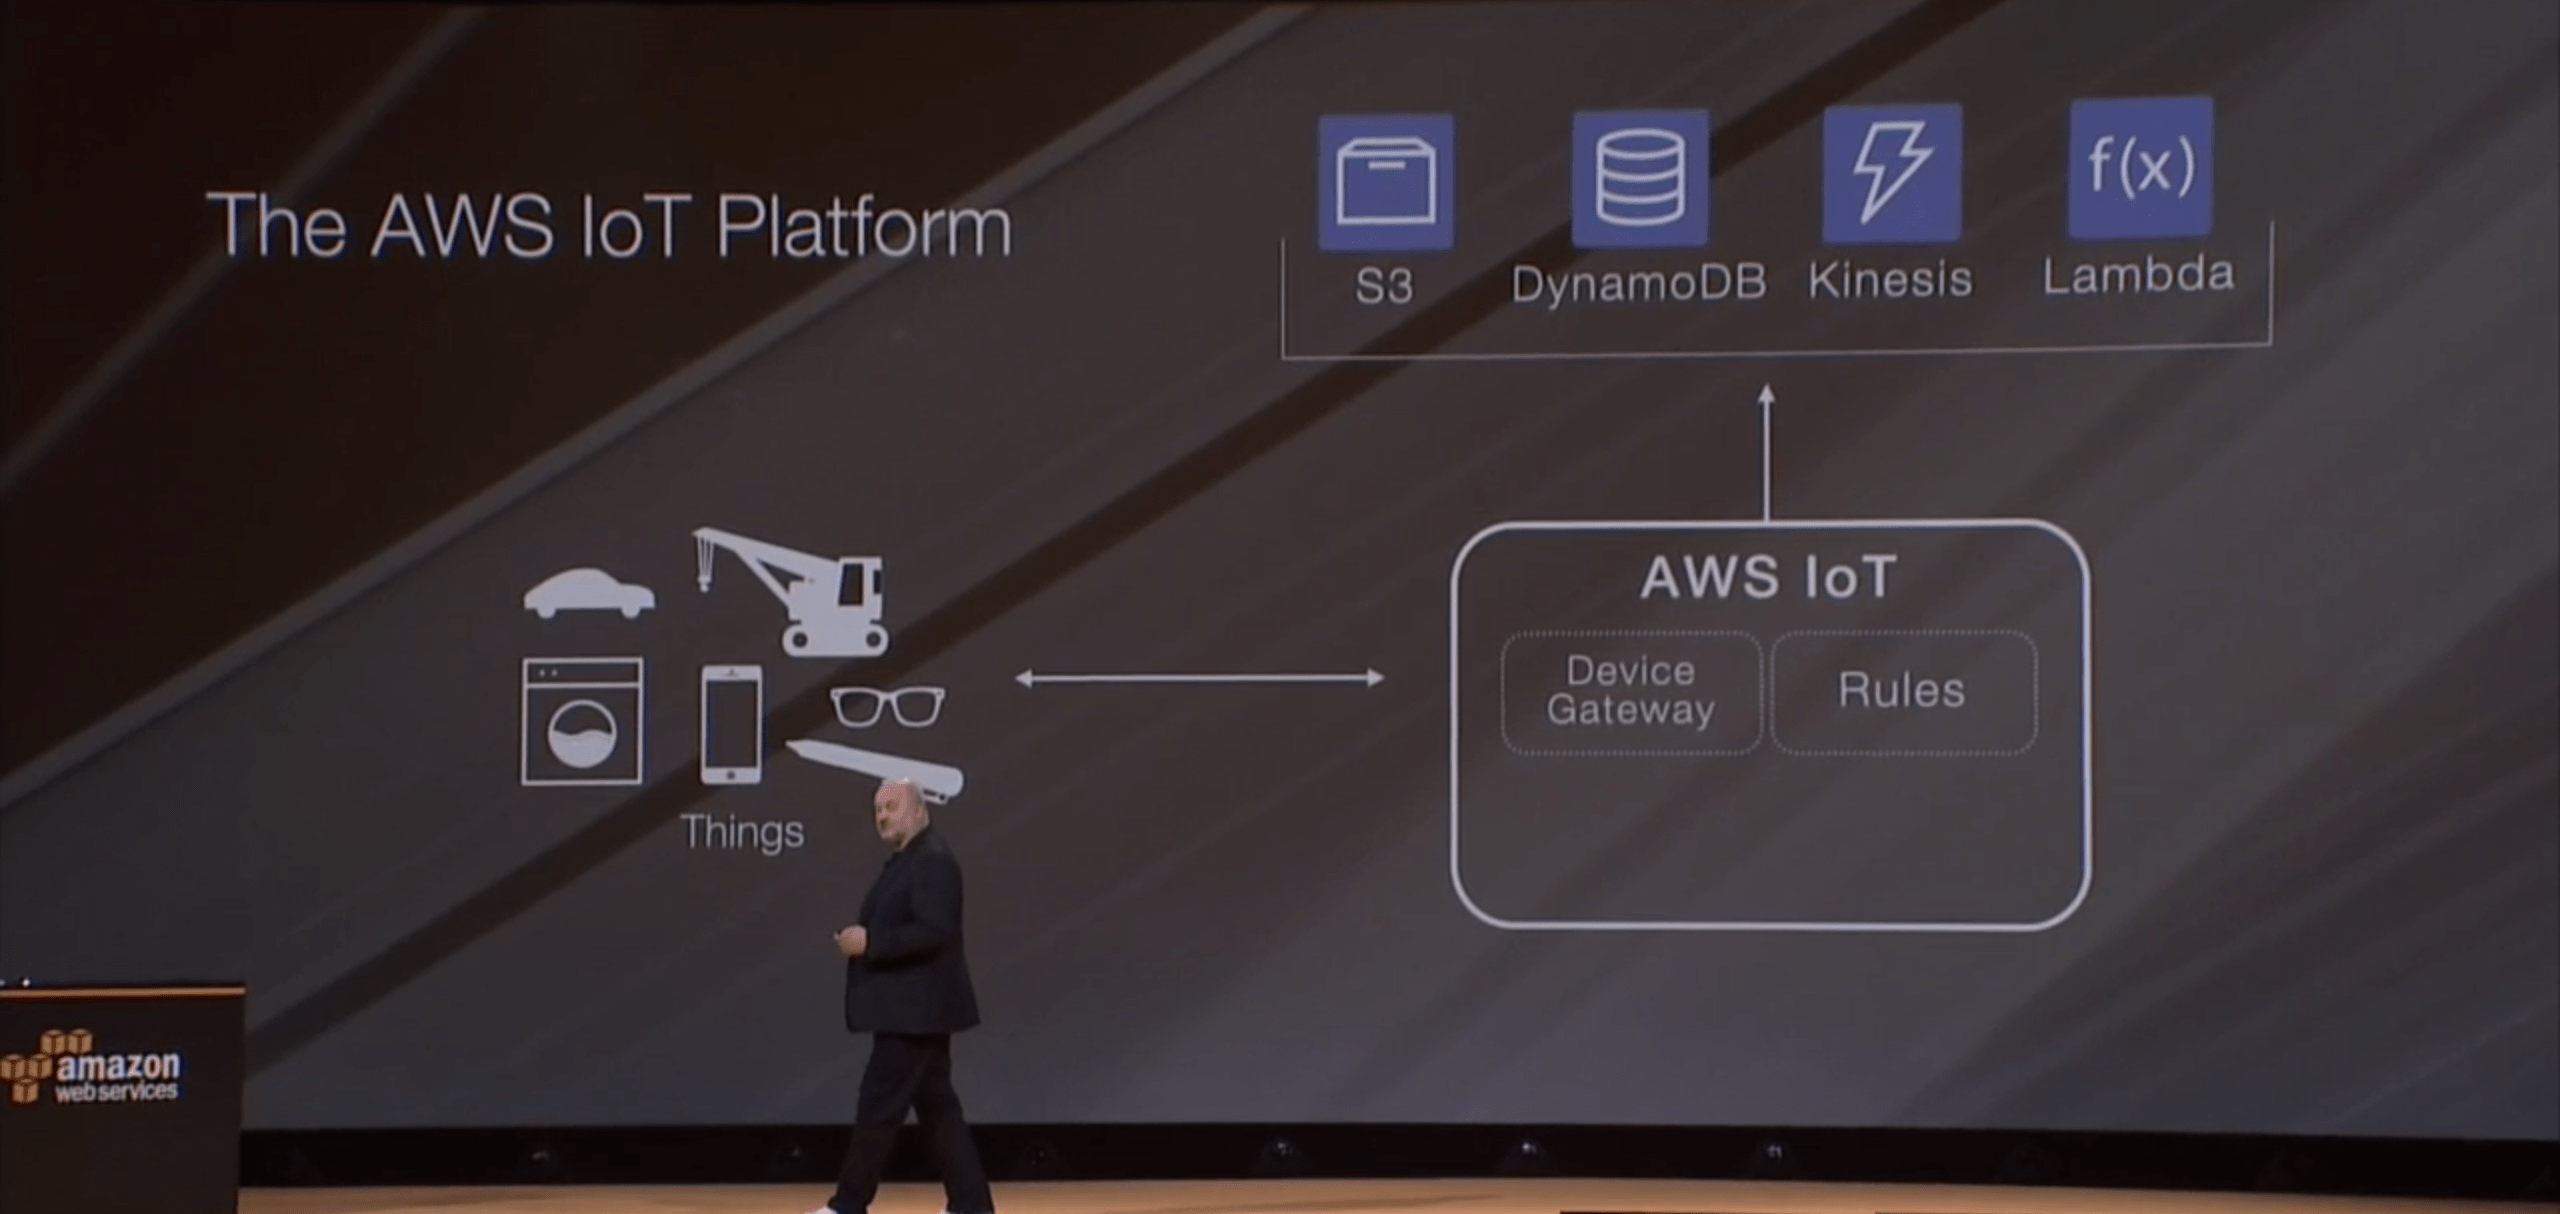 Amazon launches AWS IoT, a cloud service for Internet of Things data